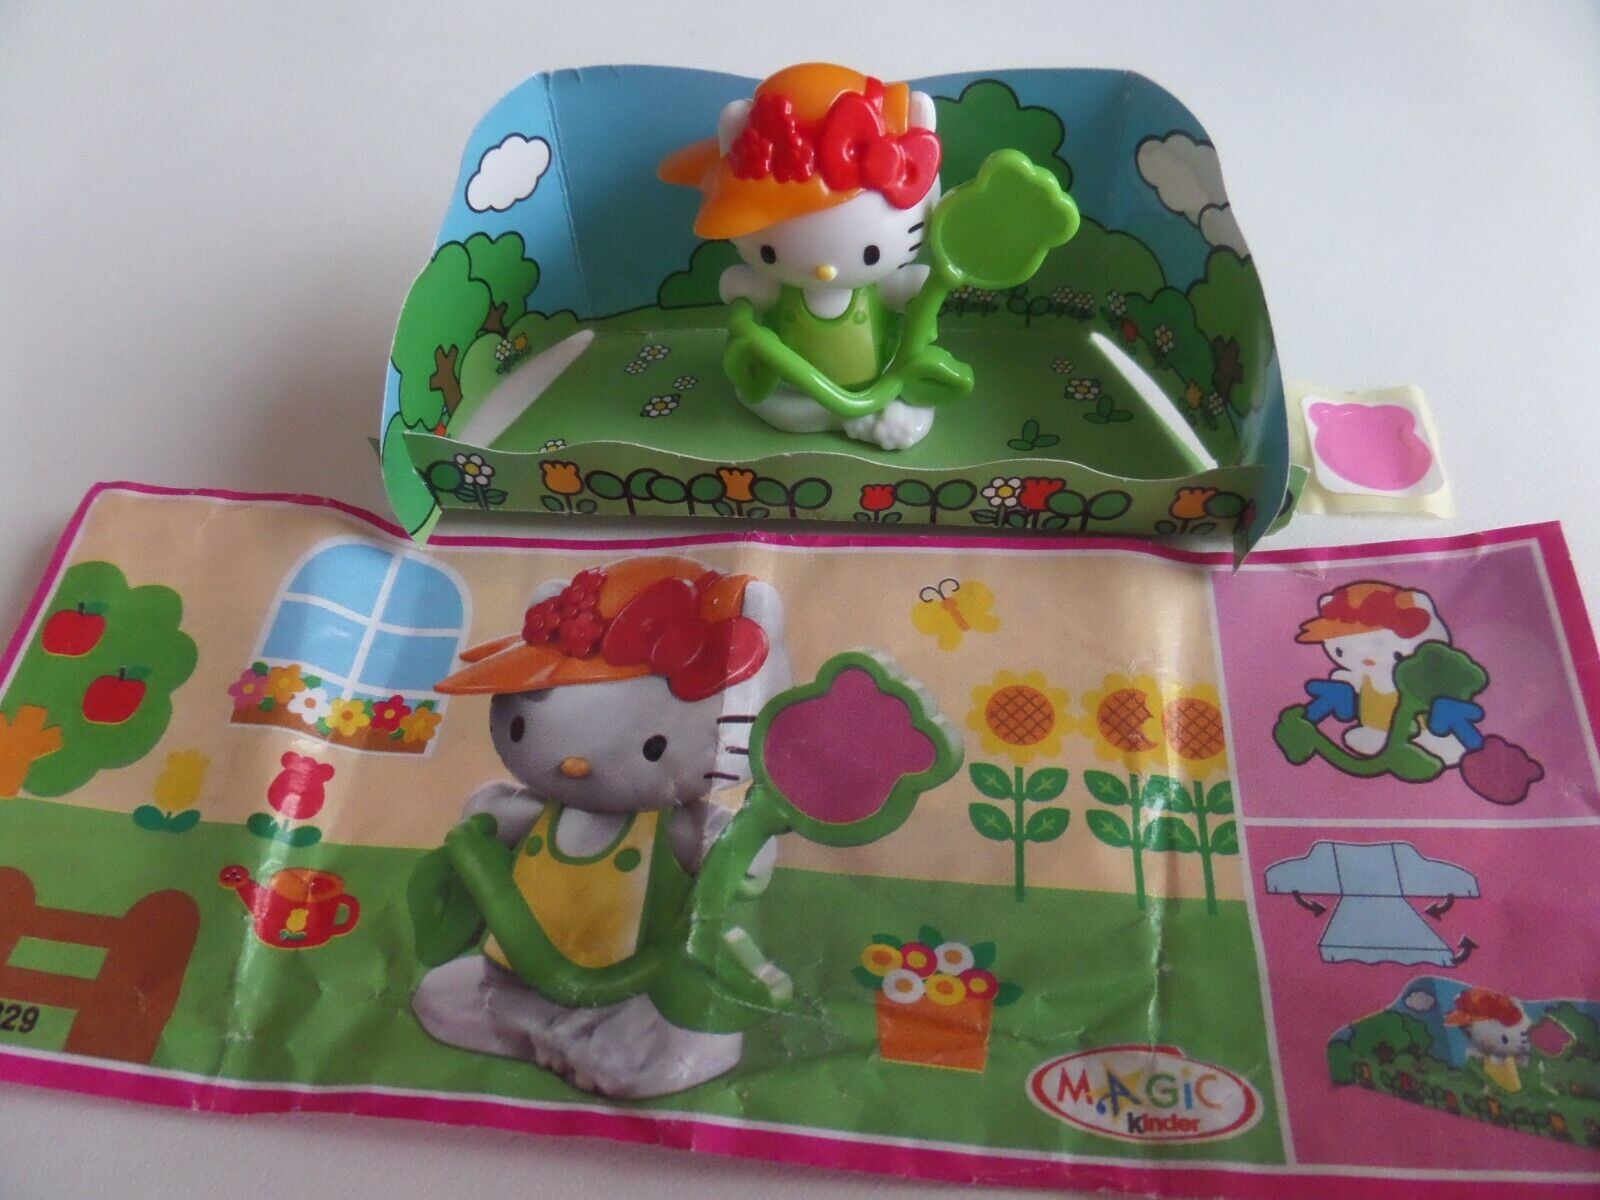 Figurine kinder kitty au jardin - ff 329 + bpz / hello kitty / 2014-2015